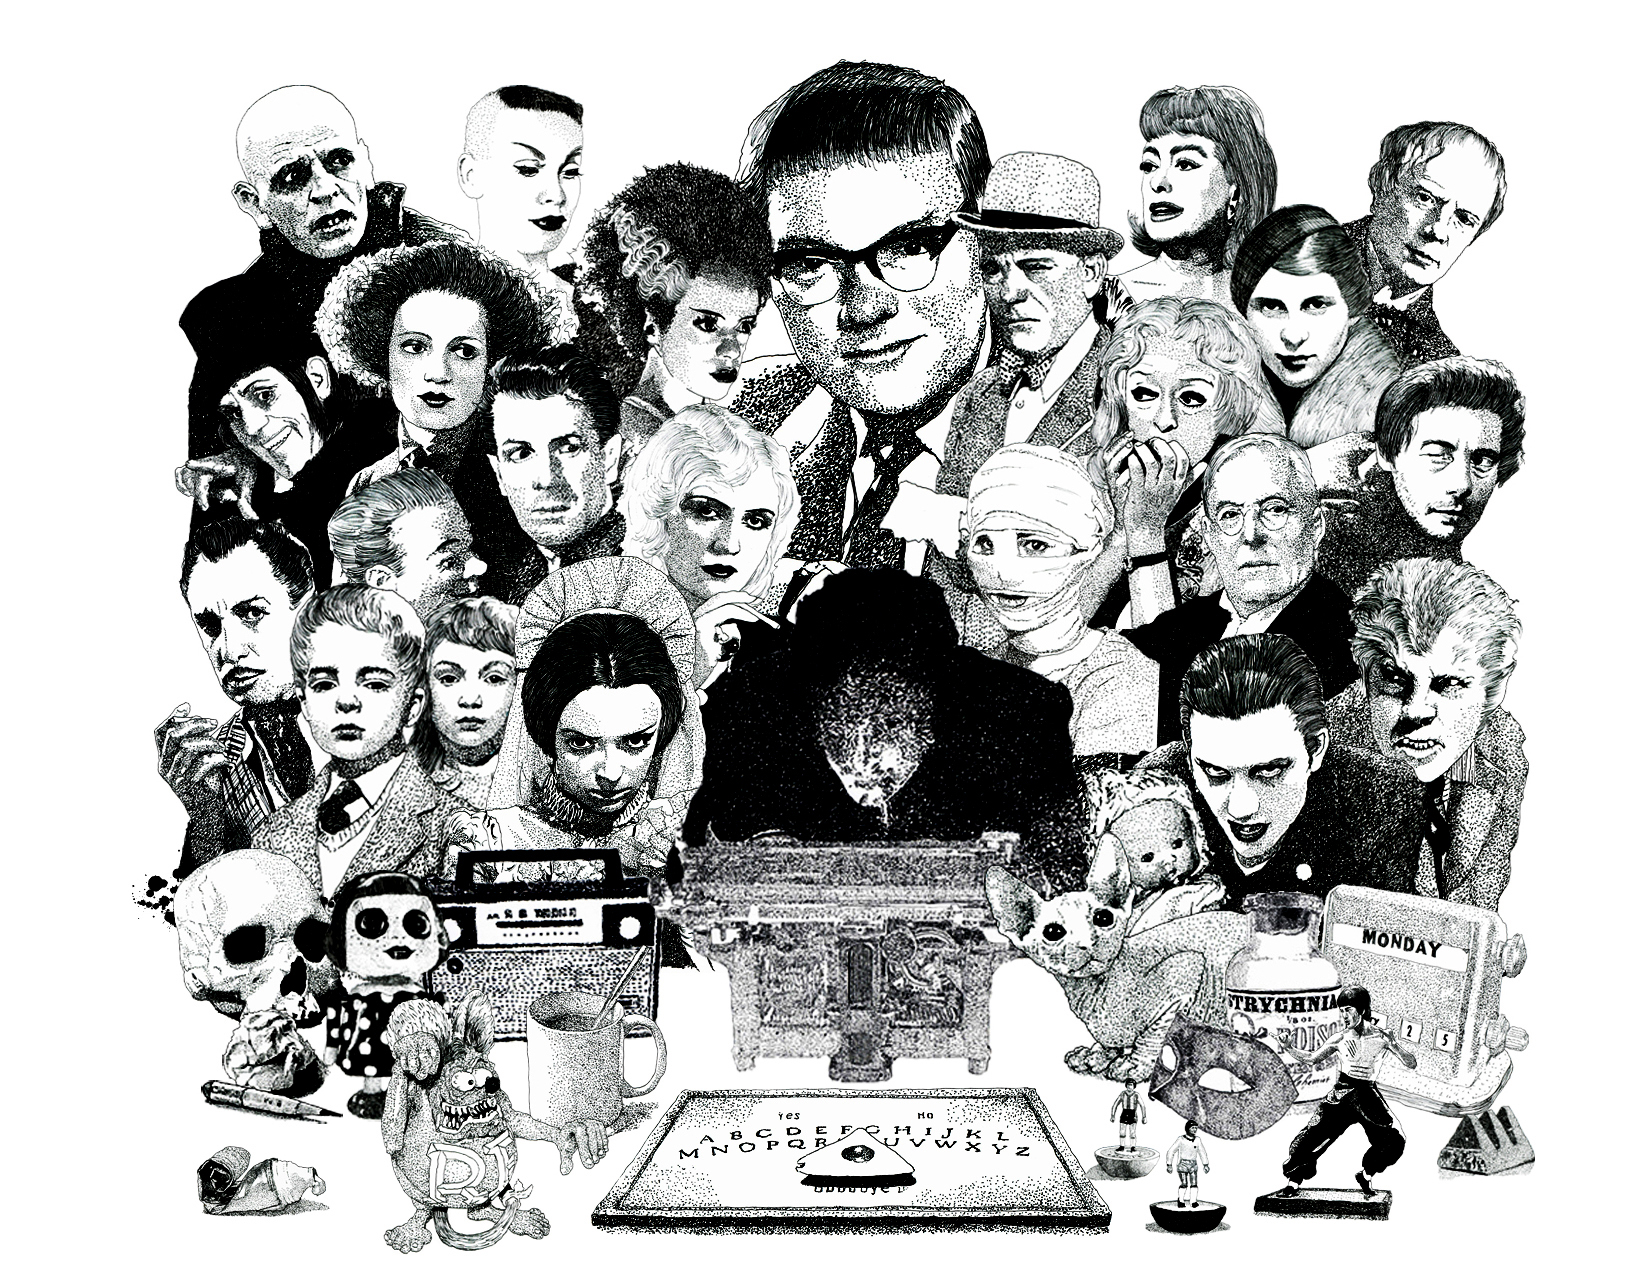 Psychic Investigator Hamilton Coe surrounded by icons of horror. Featured characters include M.R. James, Dave Vanian, Bette Davis in Whatever Happened to Baby Jane, Arthur Machen, Joan Crawford, Lon Chaney, Elsa Lanchester, Bride of Frankenstein, Michael Redgrave from Dead of Night, Vincent Price, Klaus Kinski as Nosferatu, Barbara Steele and the Children of the Damned